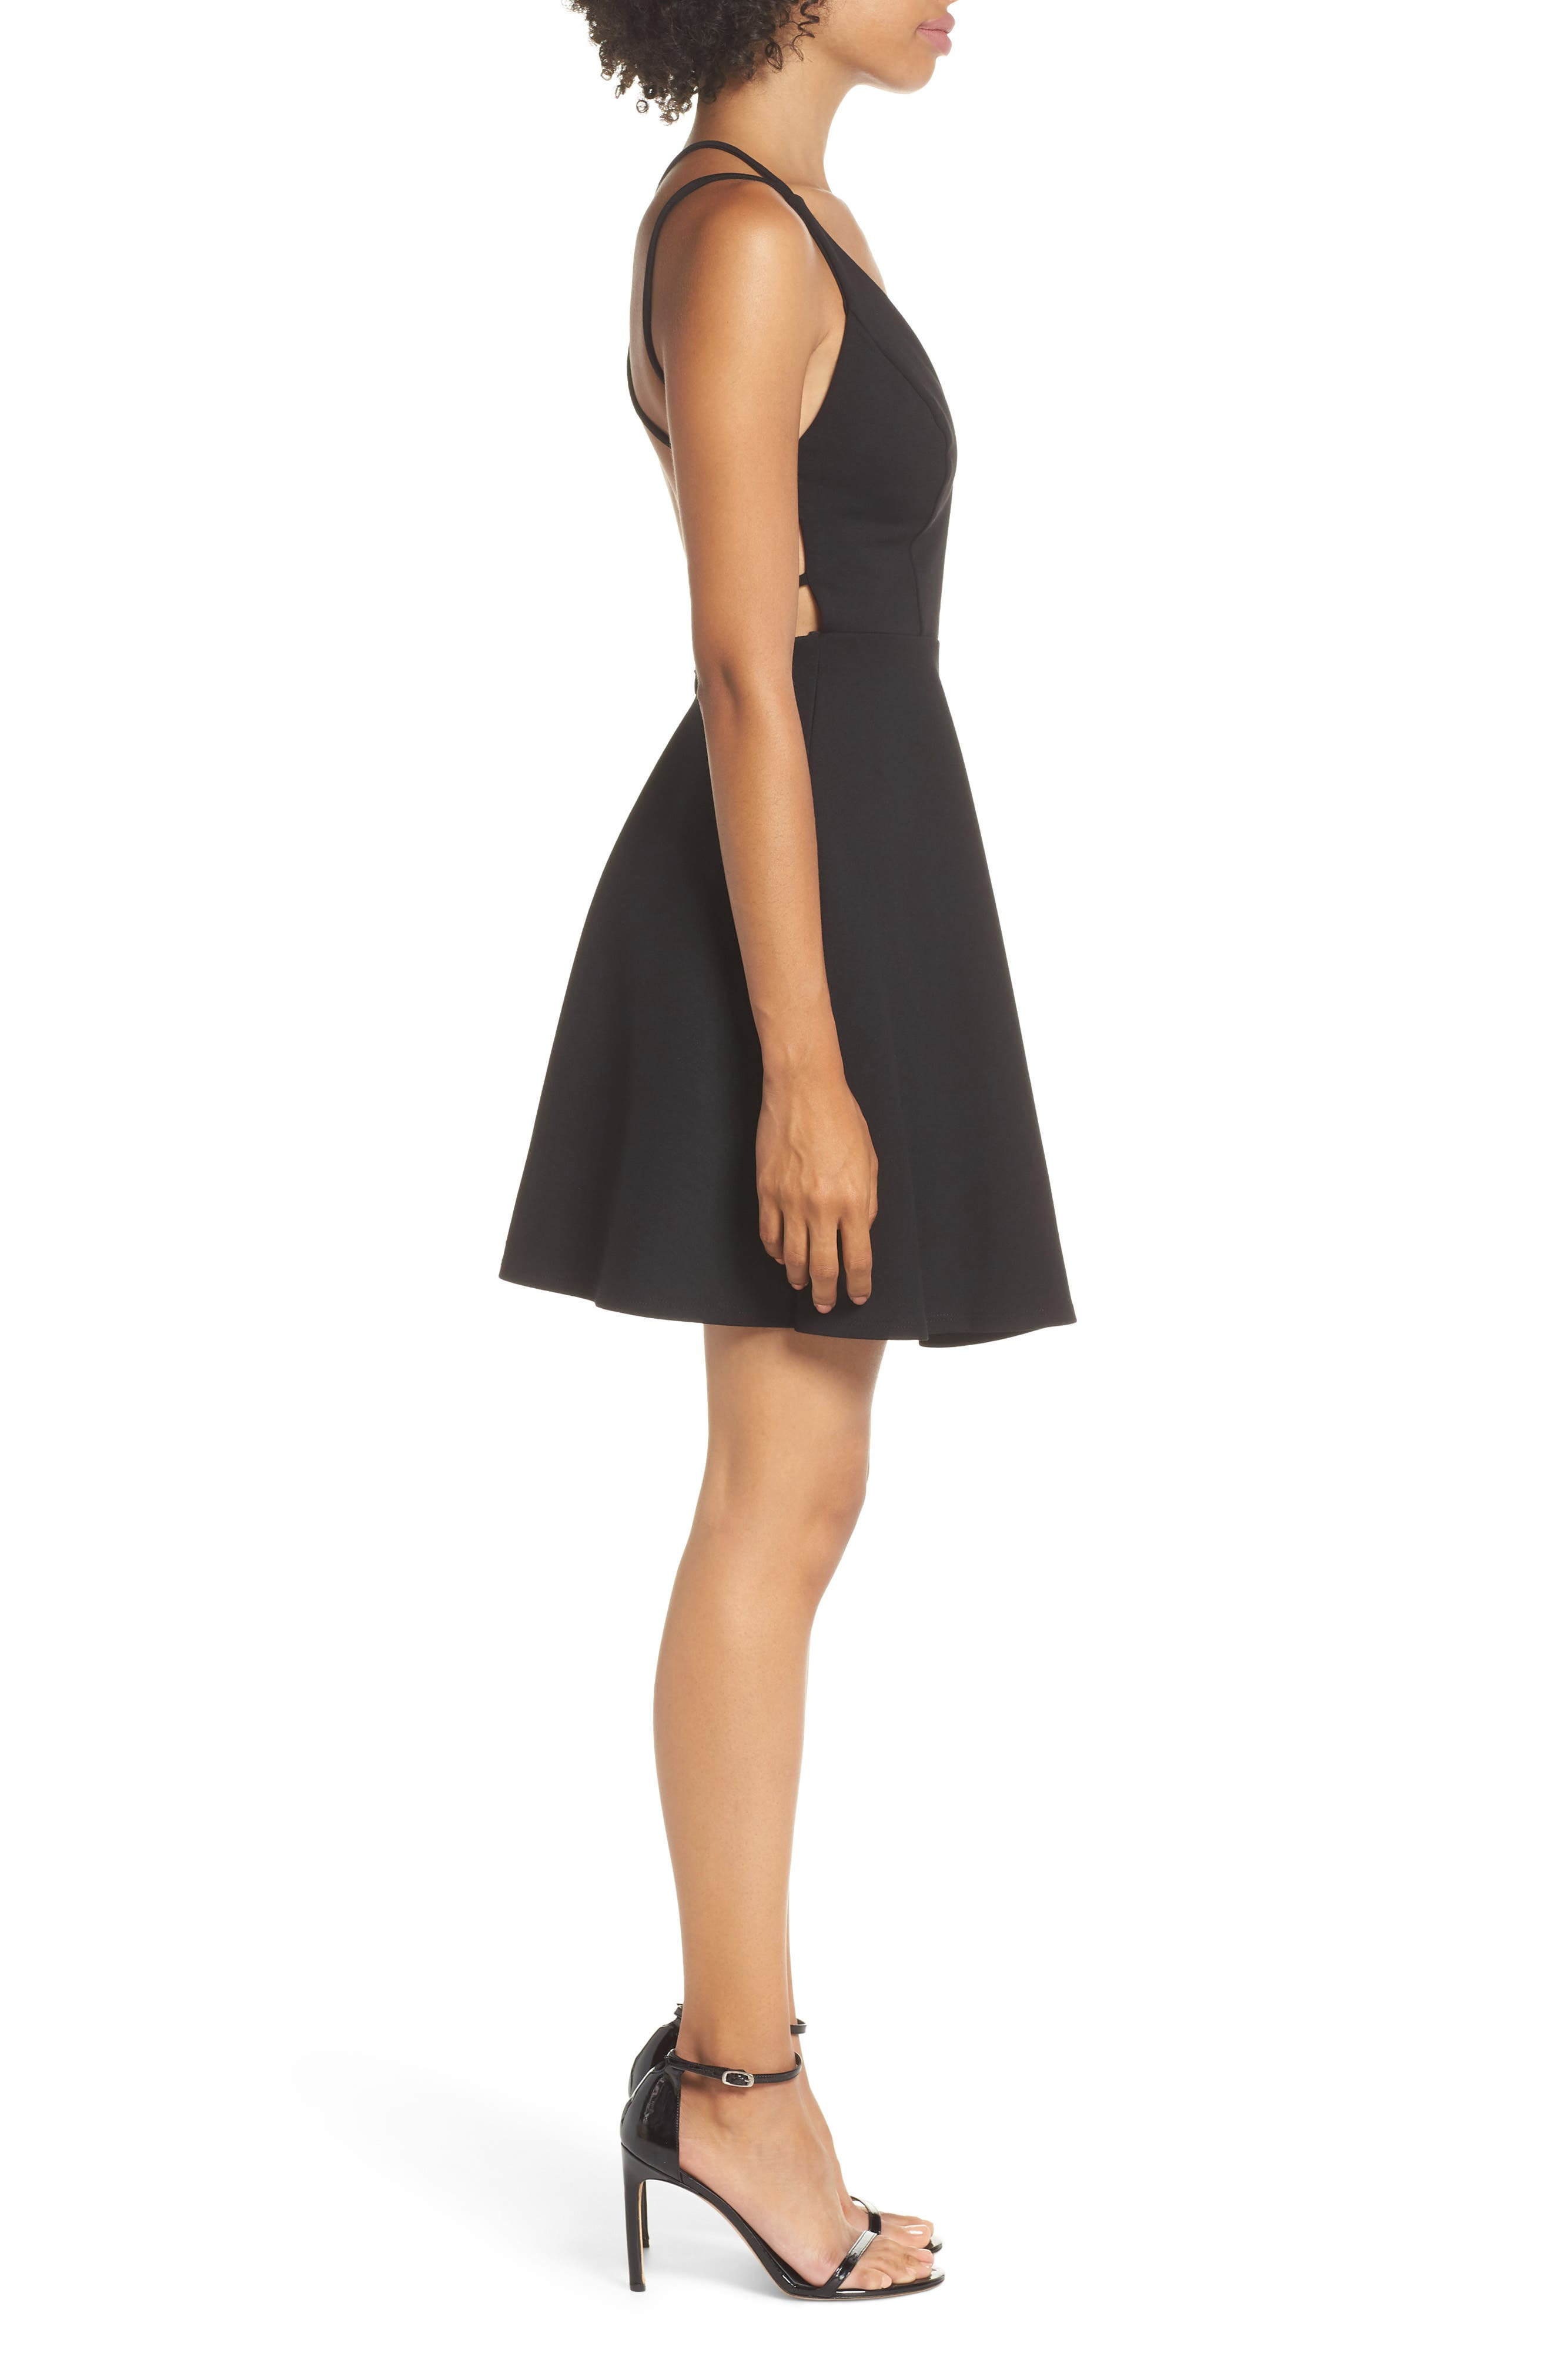 LULUS, Believe in Love Strappy Back Skater Dress, Alternate thumbnail 3, color, BLACK